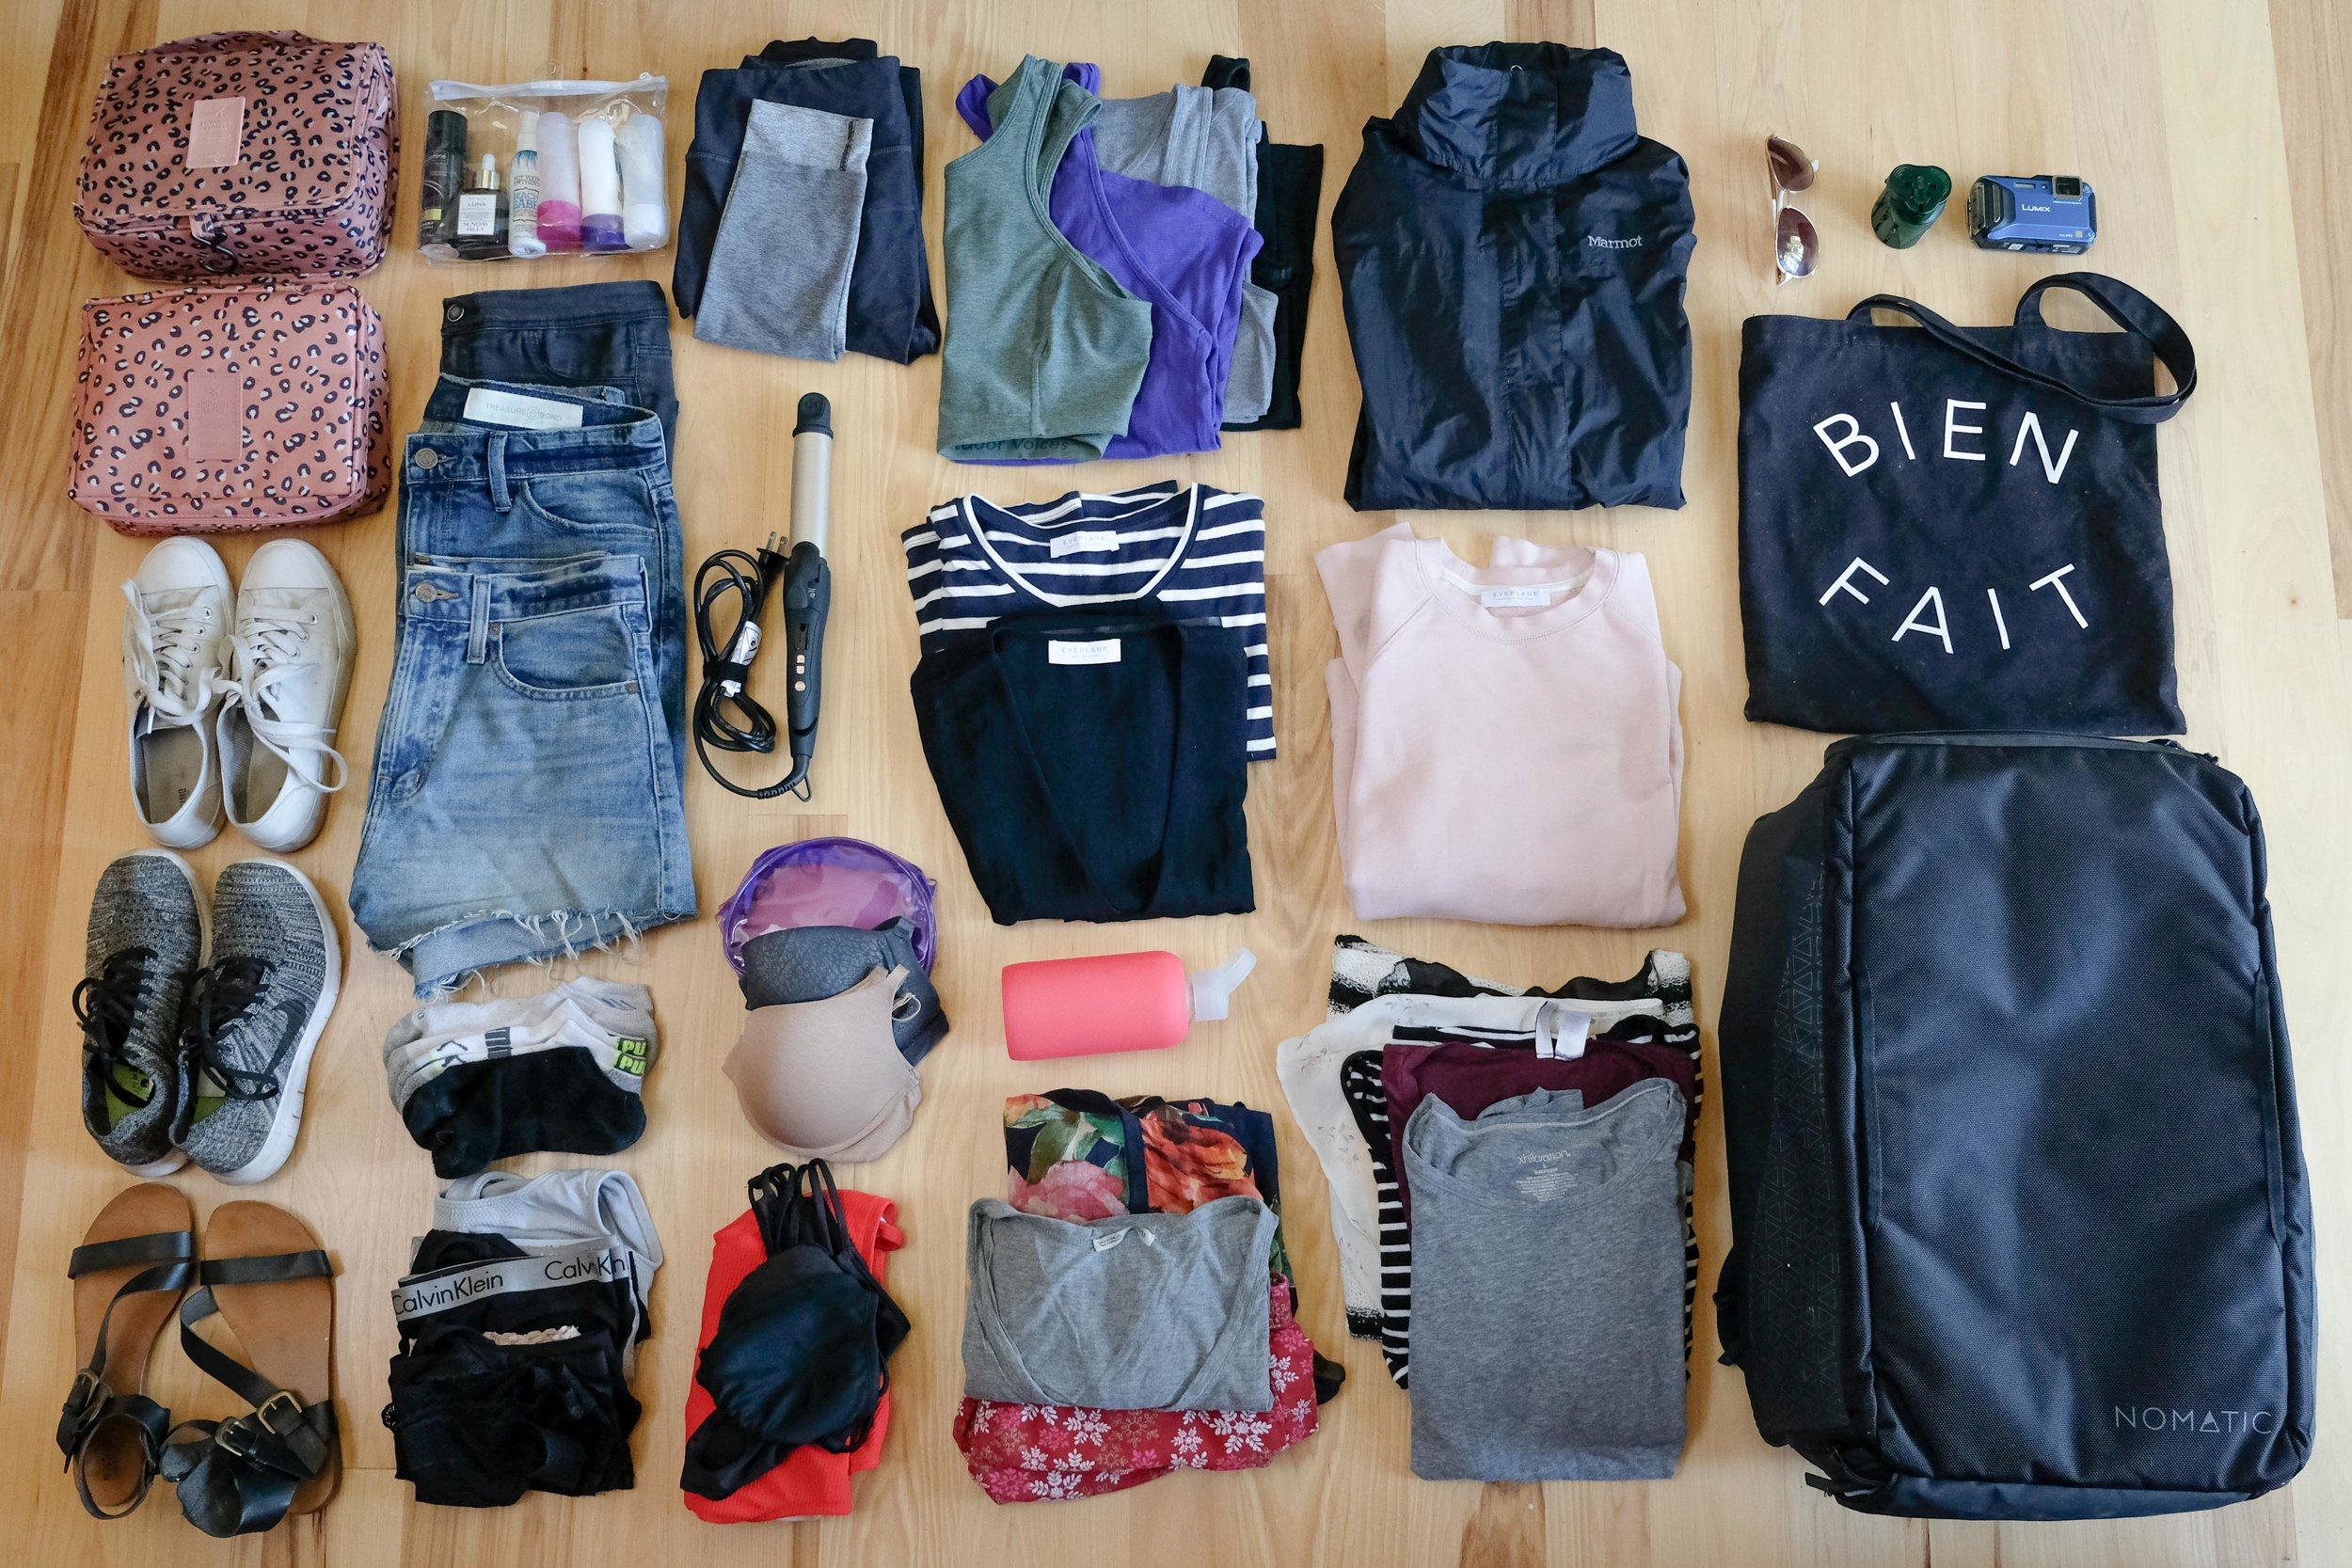 Packing for a round the world trip: Anna's Guide - August 14th, 2017